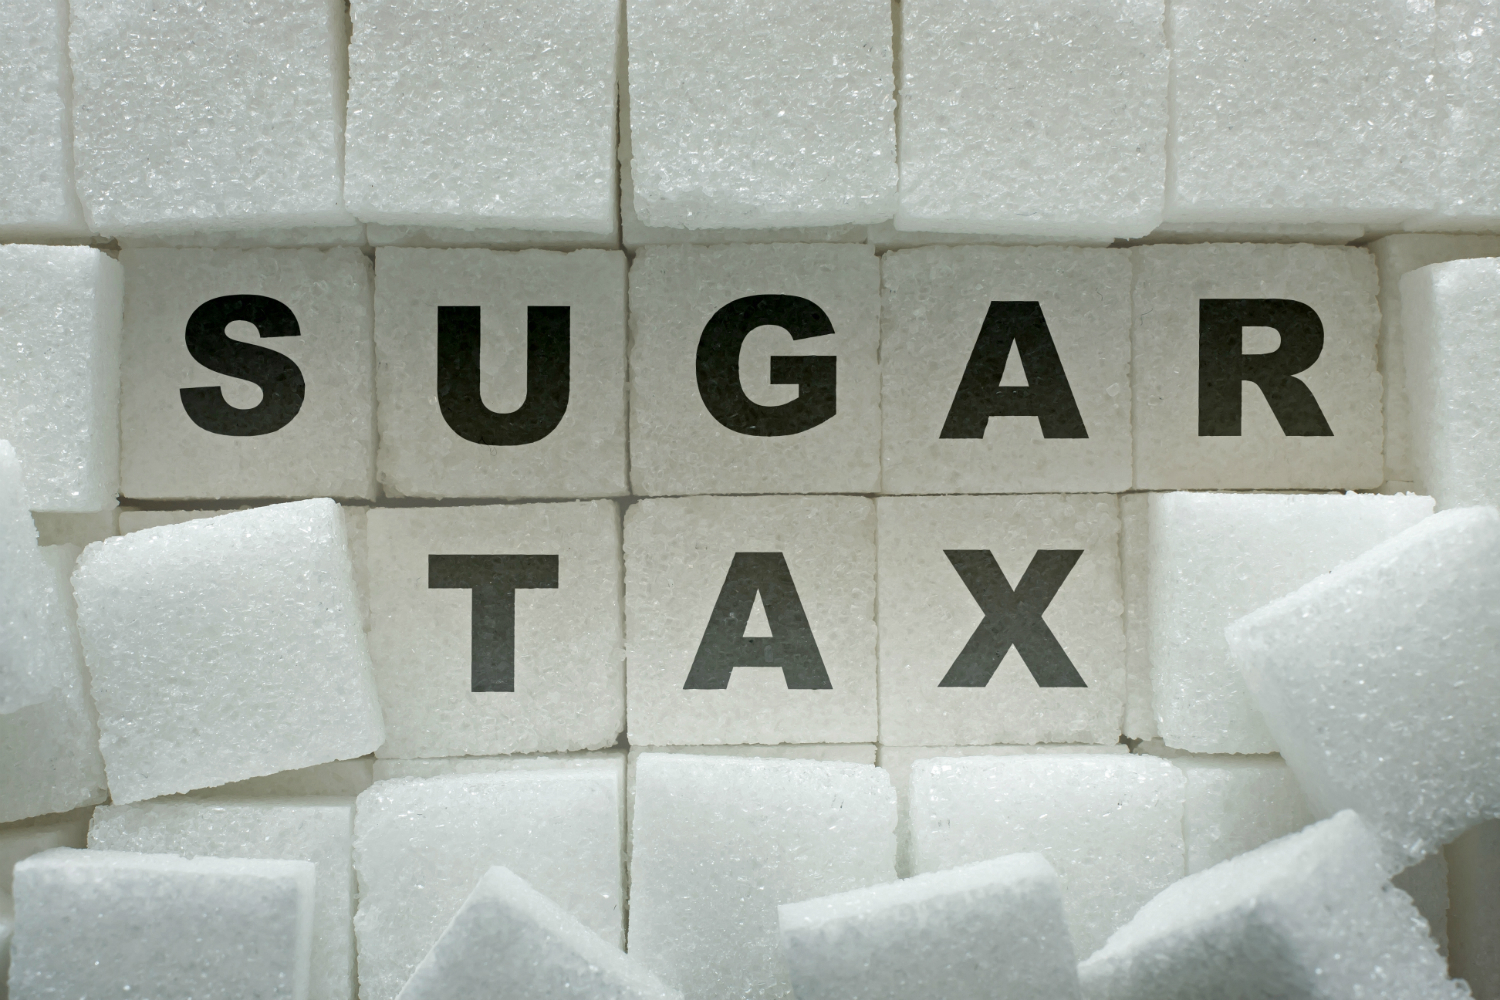 Sugar tax is a good start to help the health of the nation